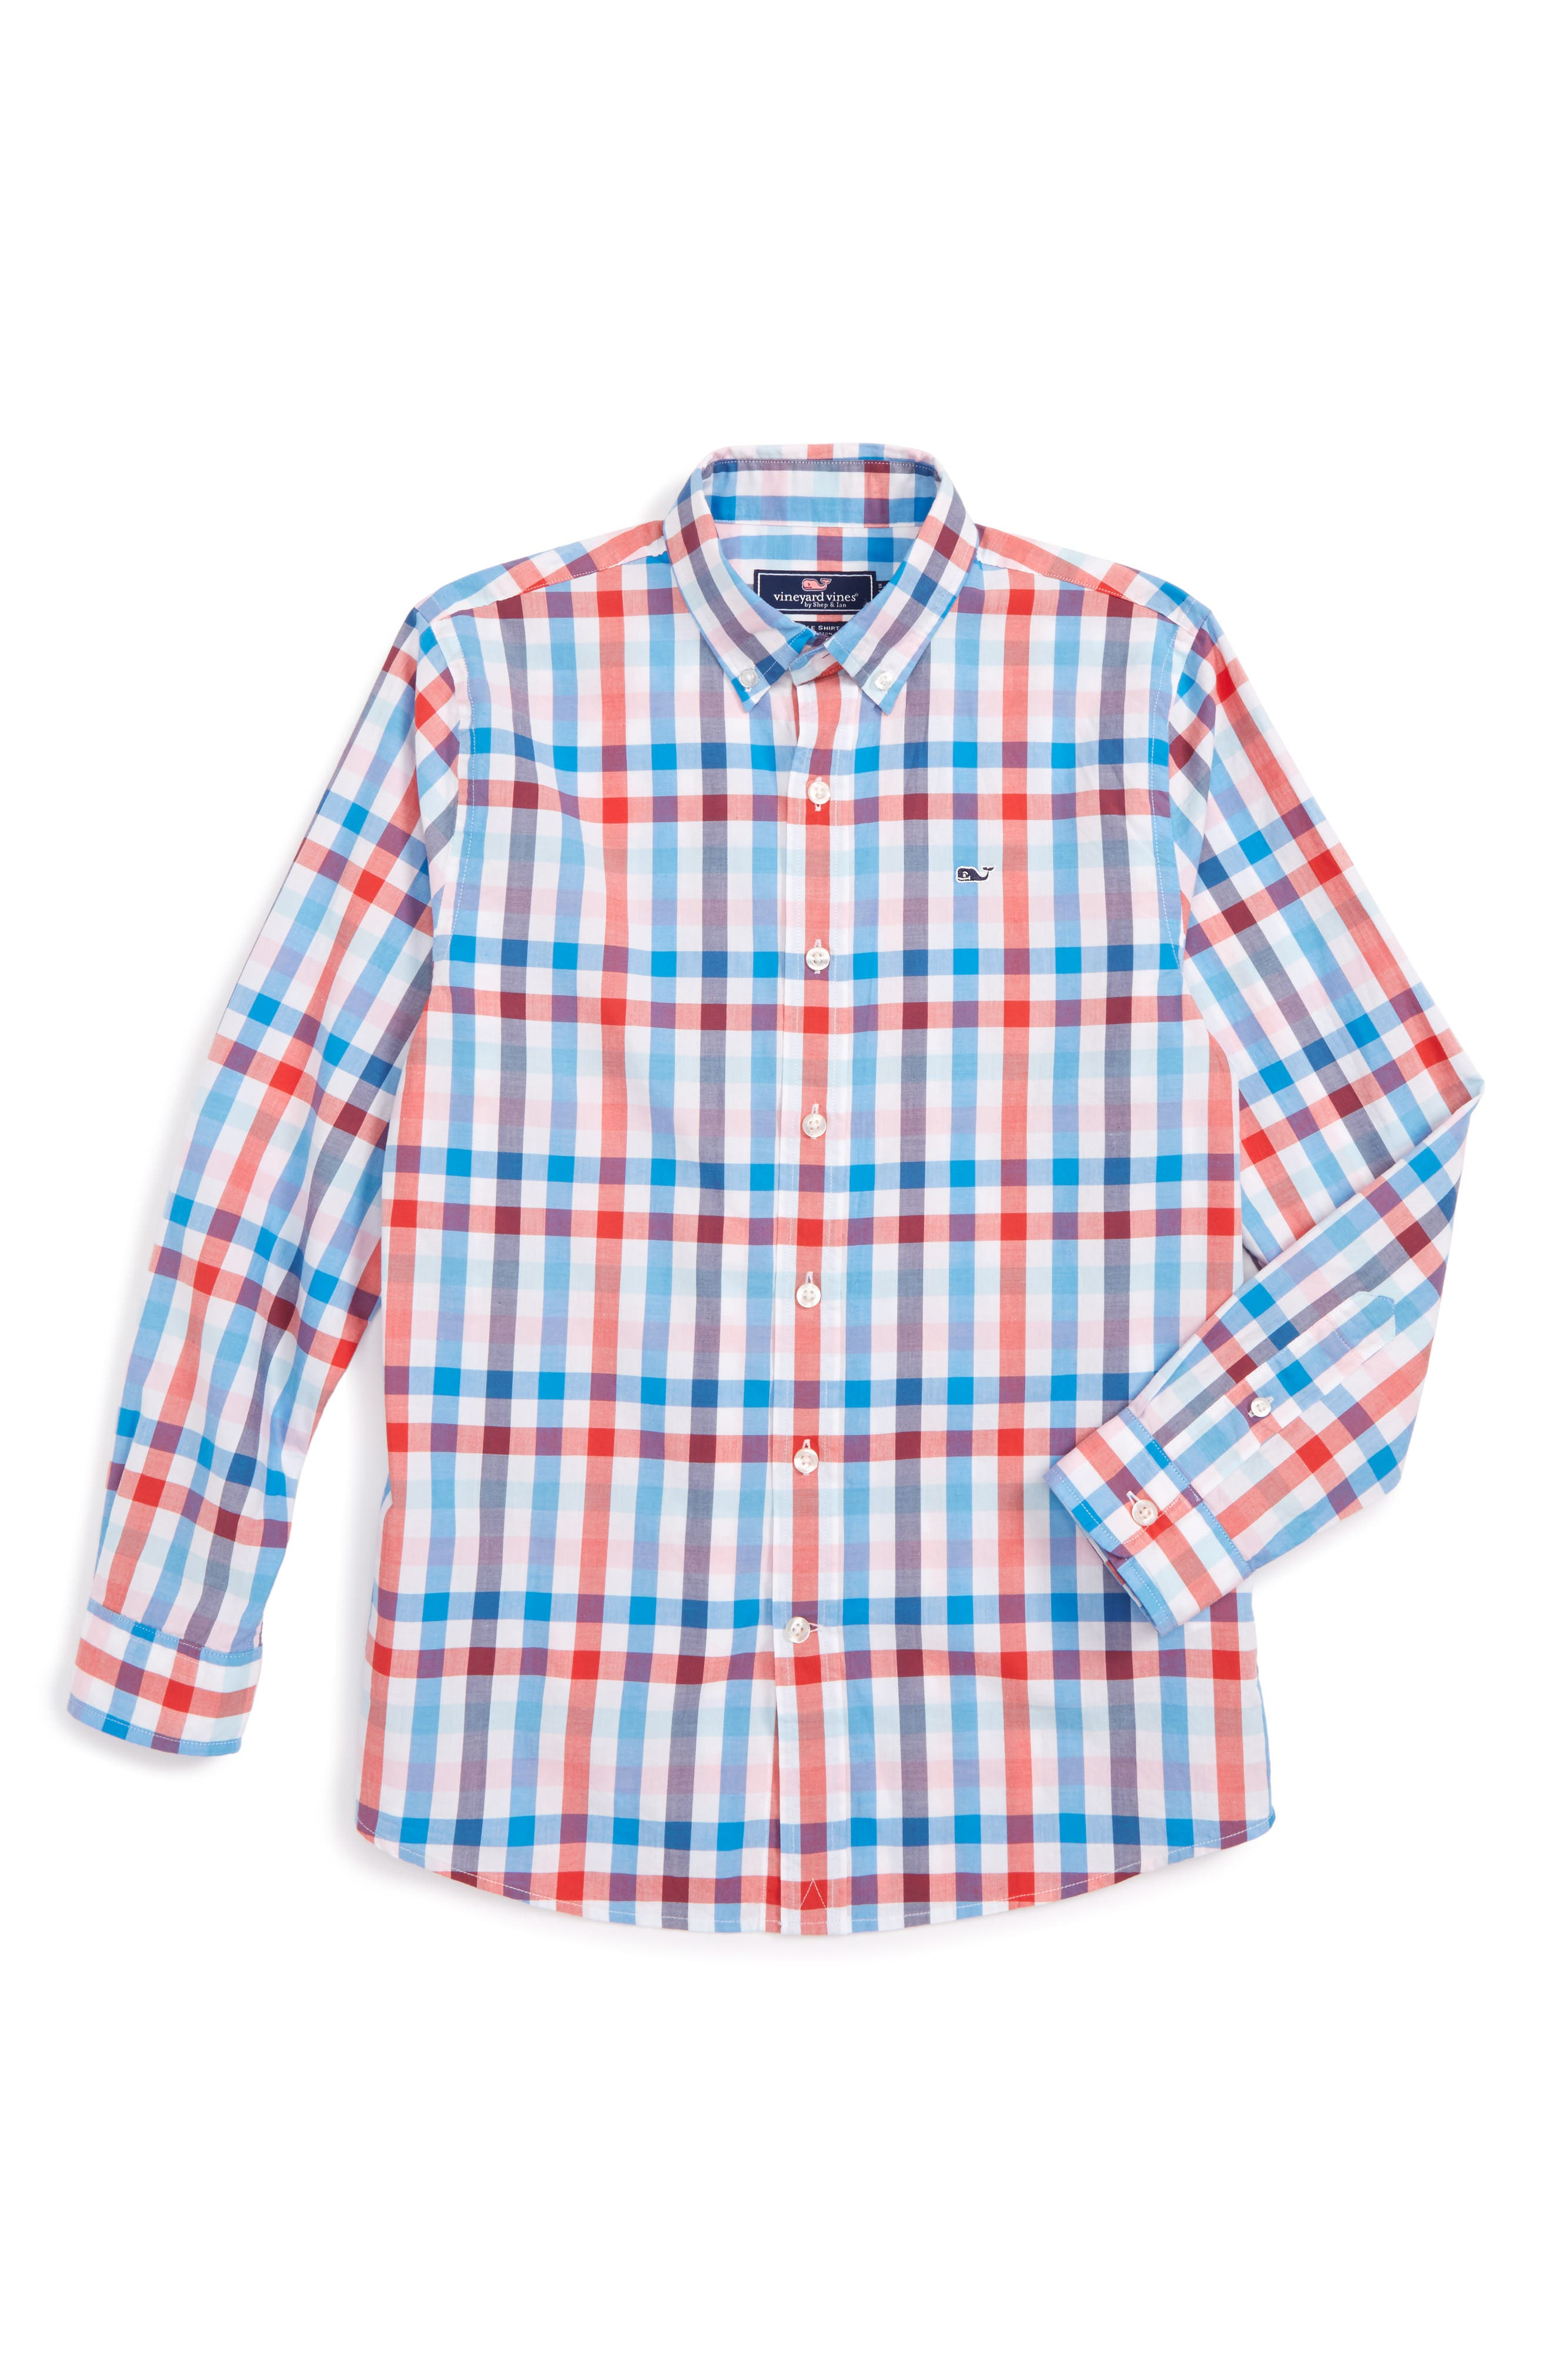 Chalwell Gingham Whale Shirt, Main, color, 615